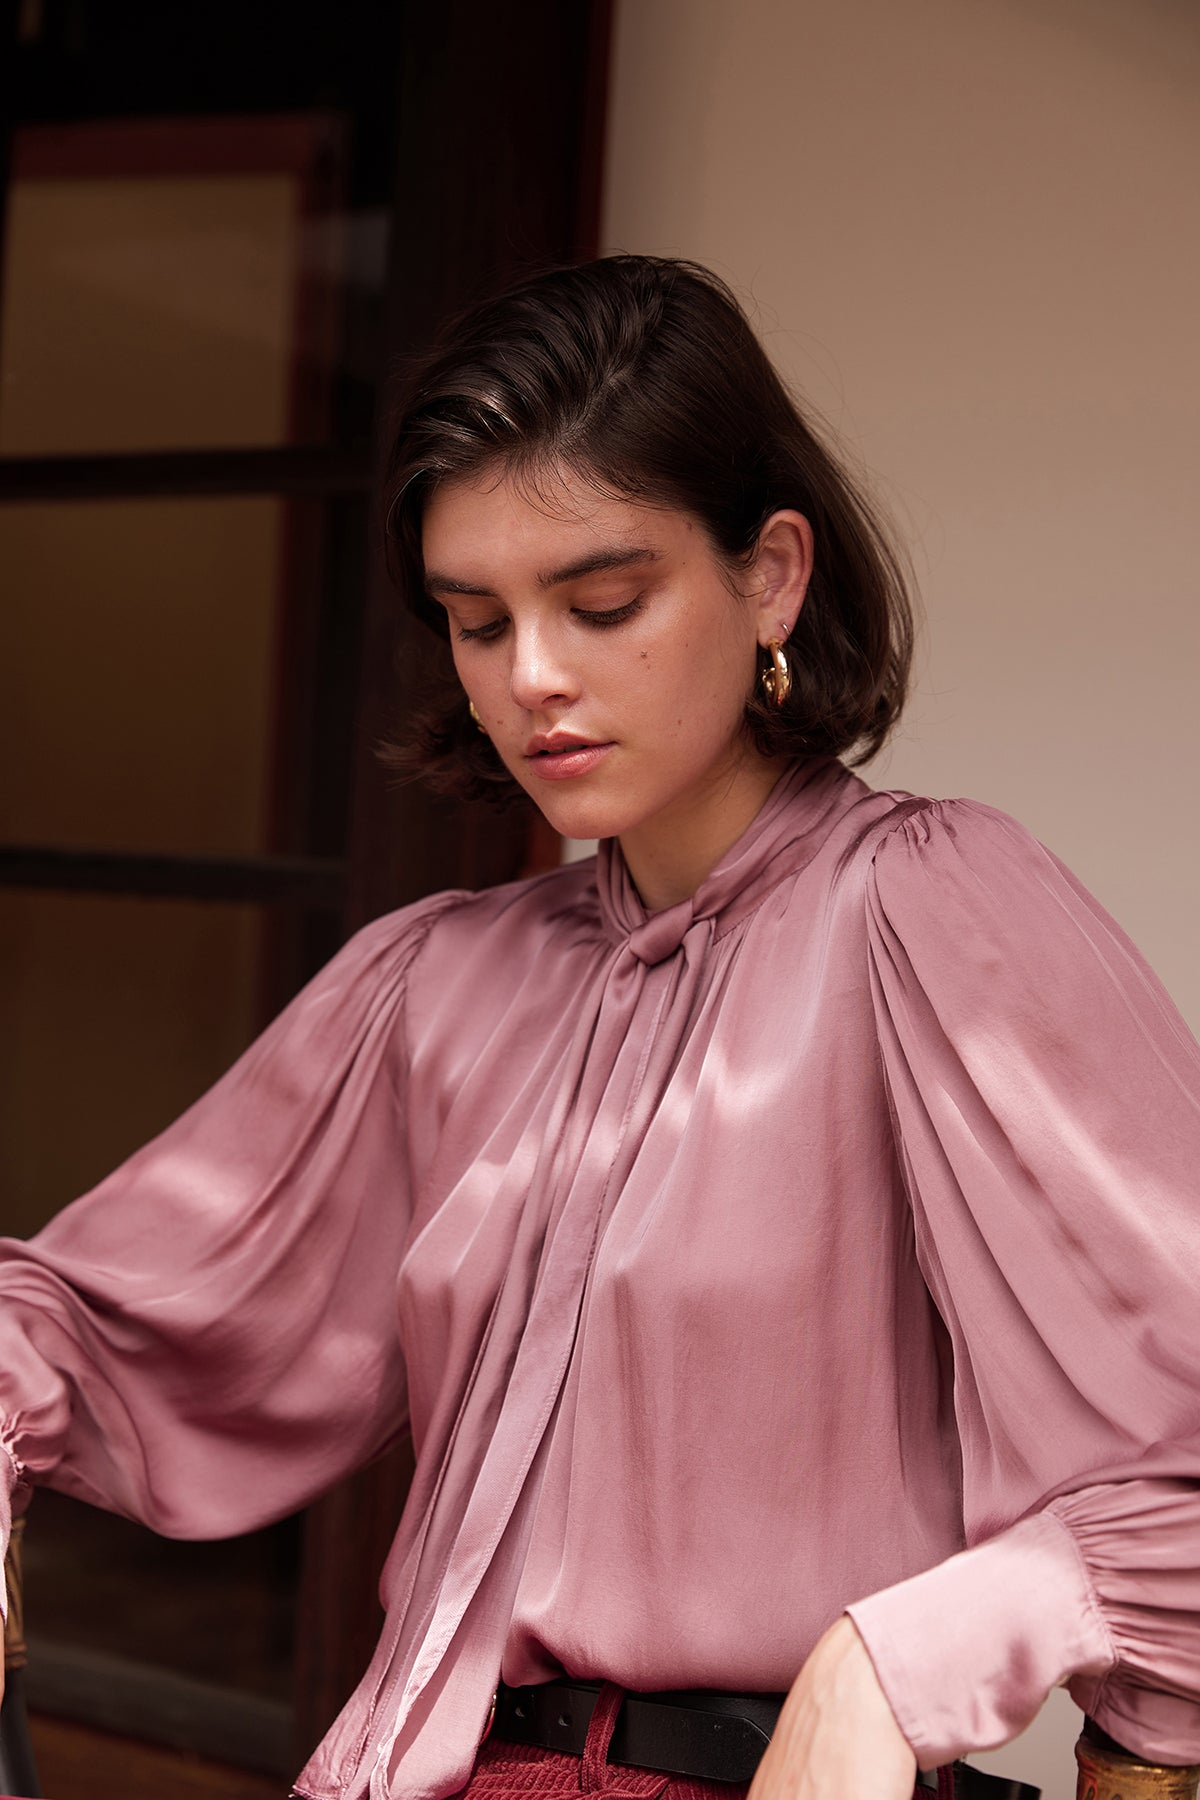 ALANNA SATIN VISCOSE BOW TIE BLOUSE